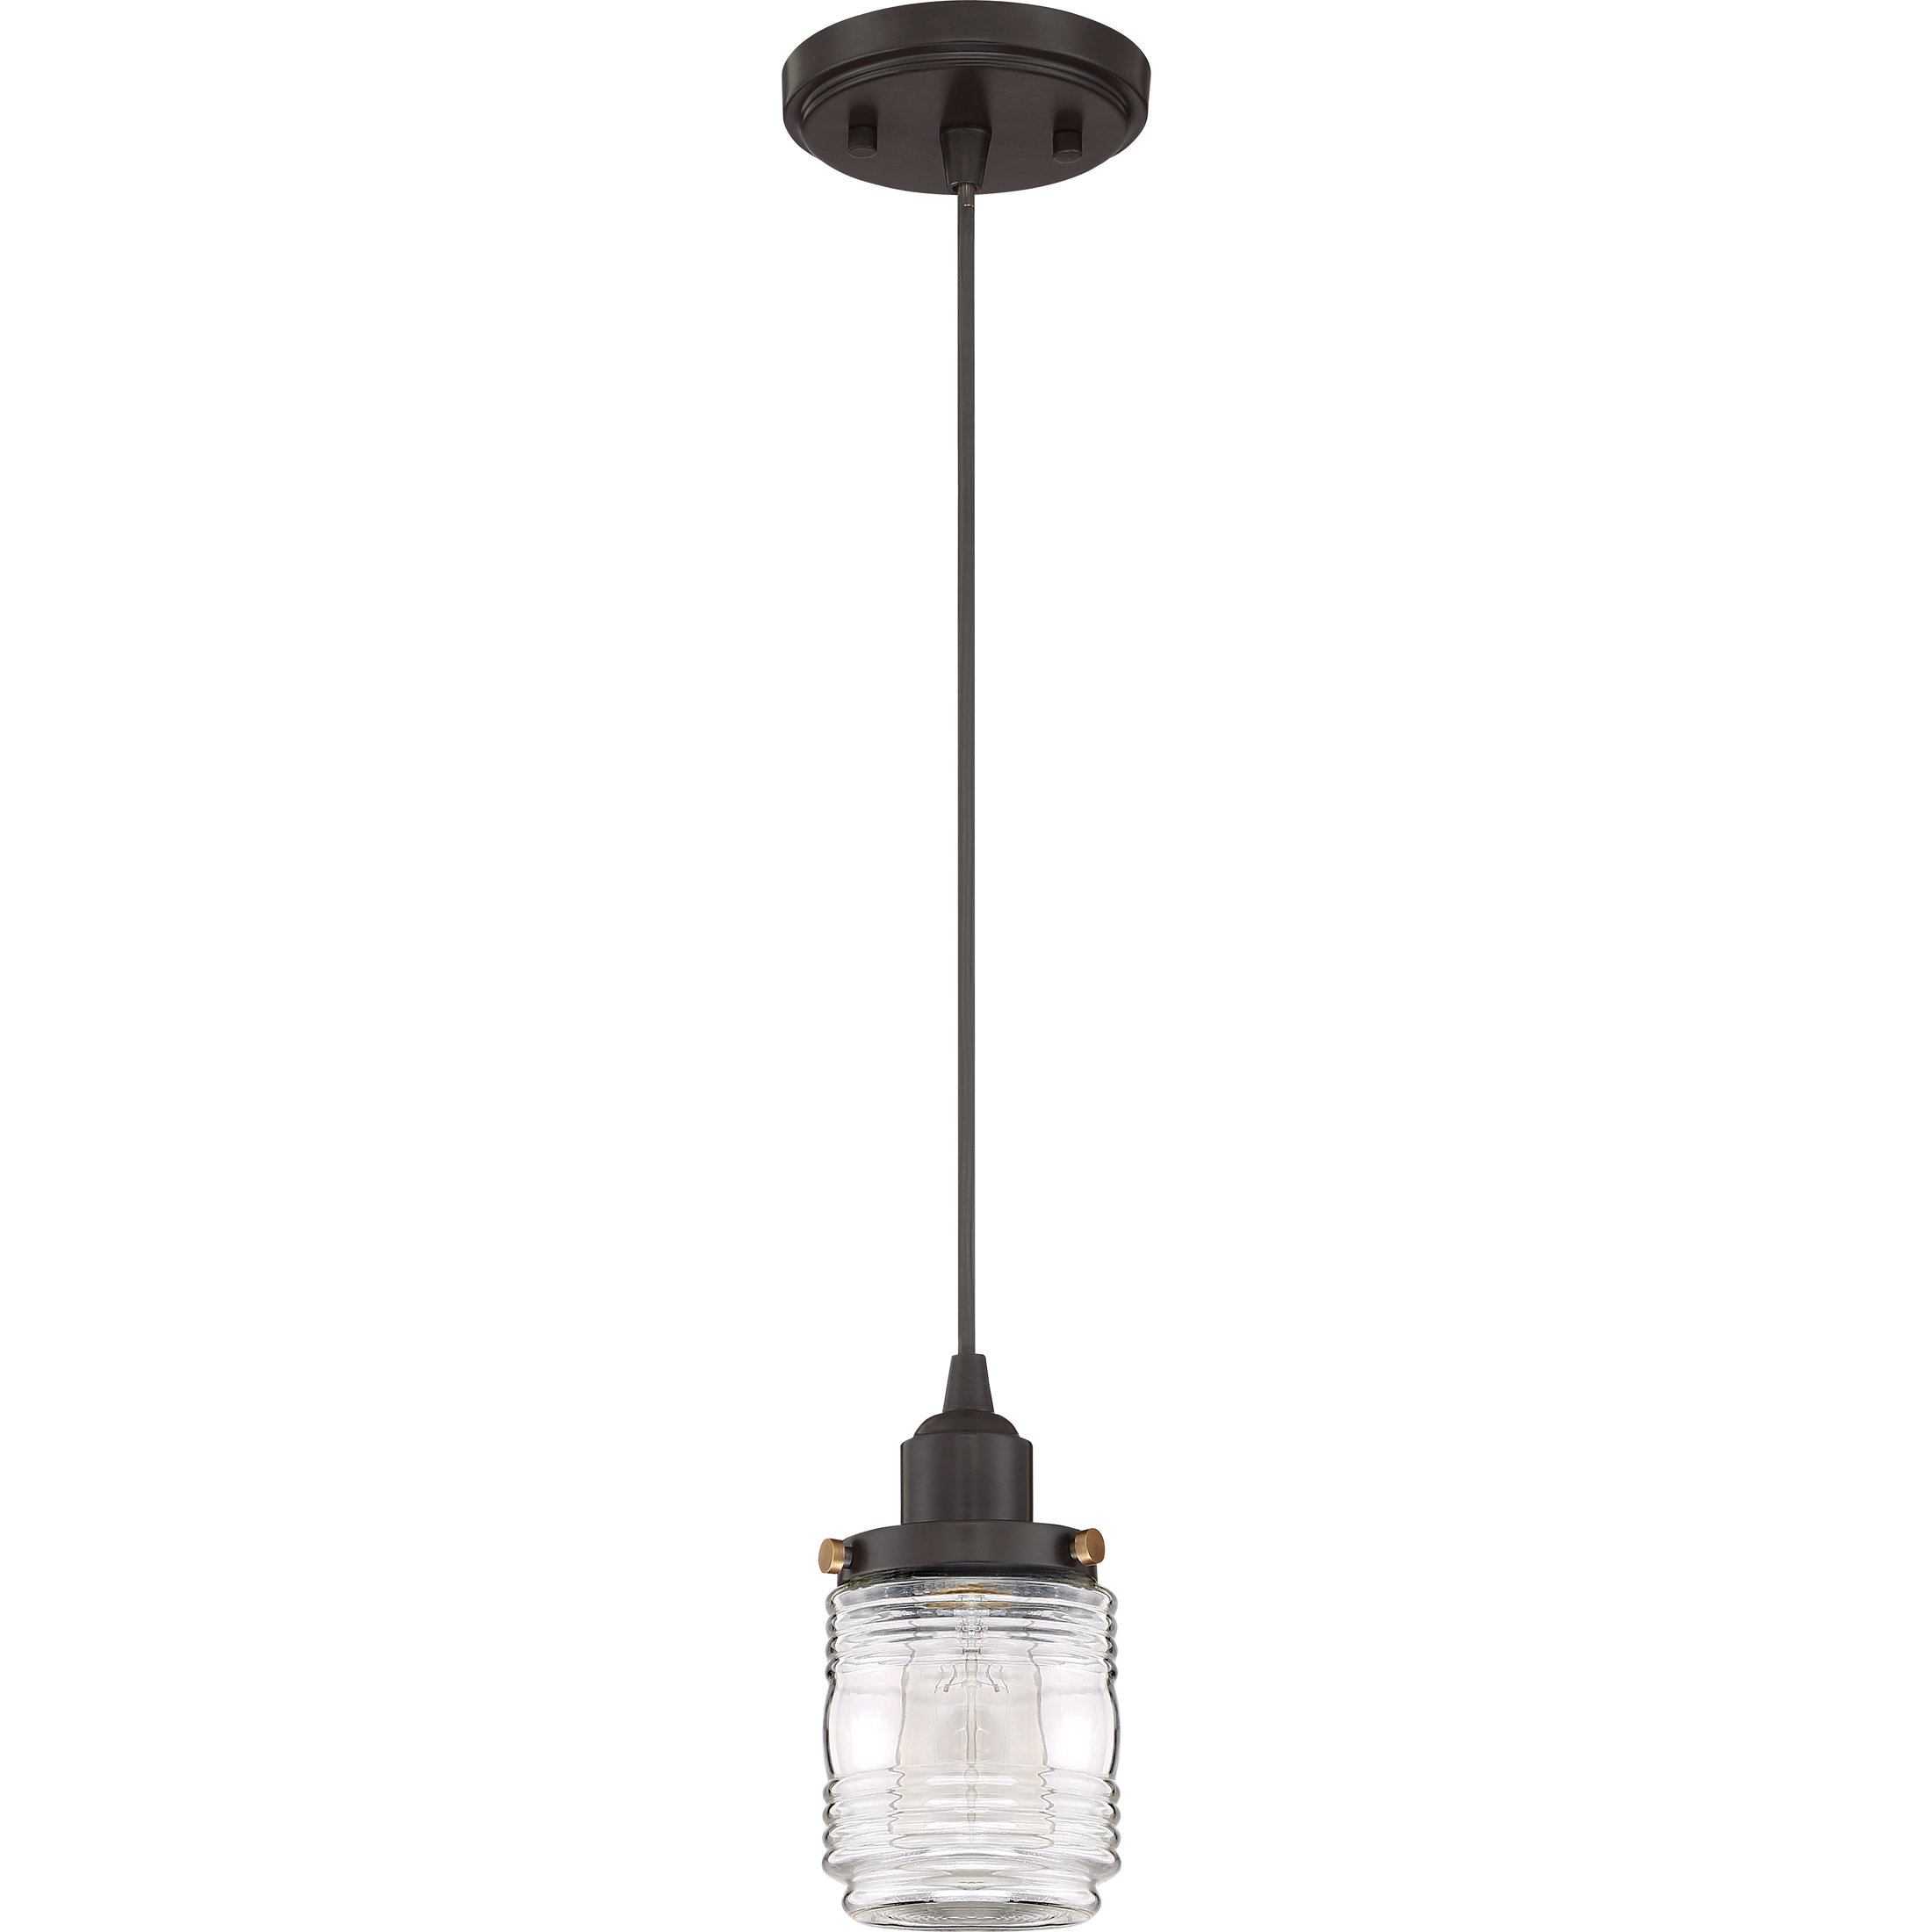 Cinchring 1 Light Cone Pendants Intended For Most Up To Date Burgess 1 Light Single Jar Pendant (View 6 of 20)